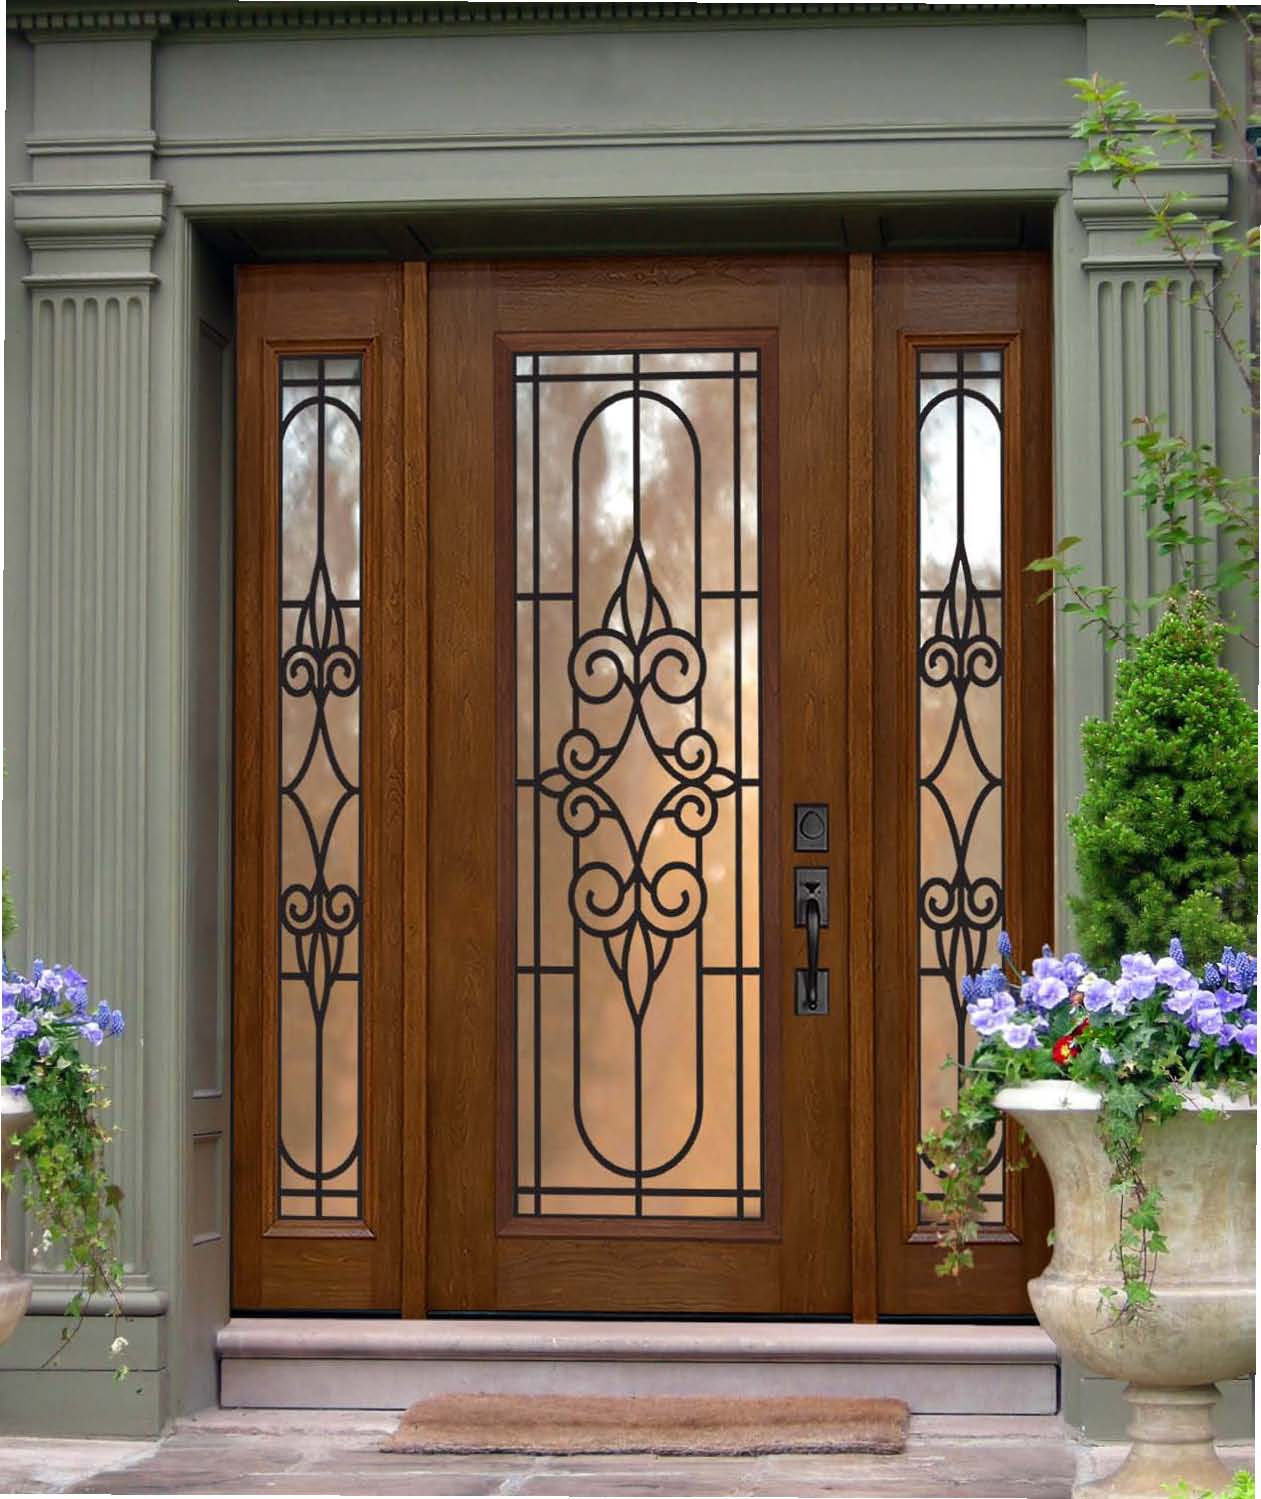 1499 #613B1E US Door And More Inc.: Make Your Entry Door Trendy With Sidelights picture/photo Fibreglass Exterior Doors 41191261